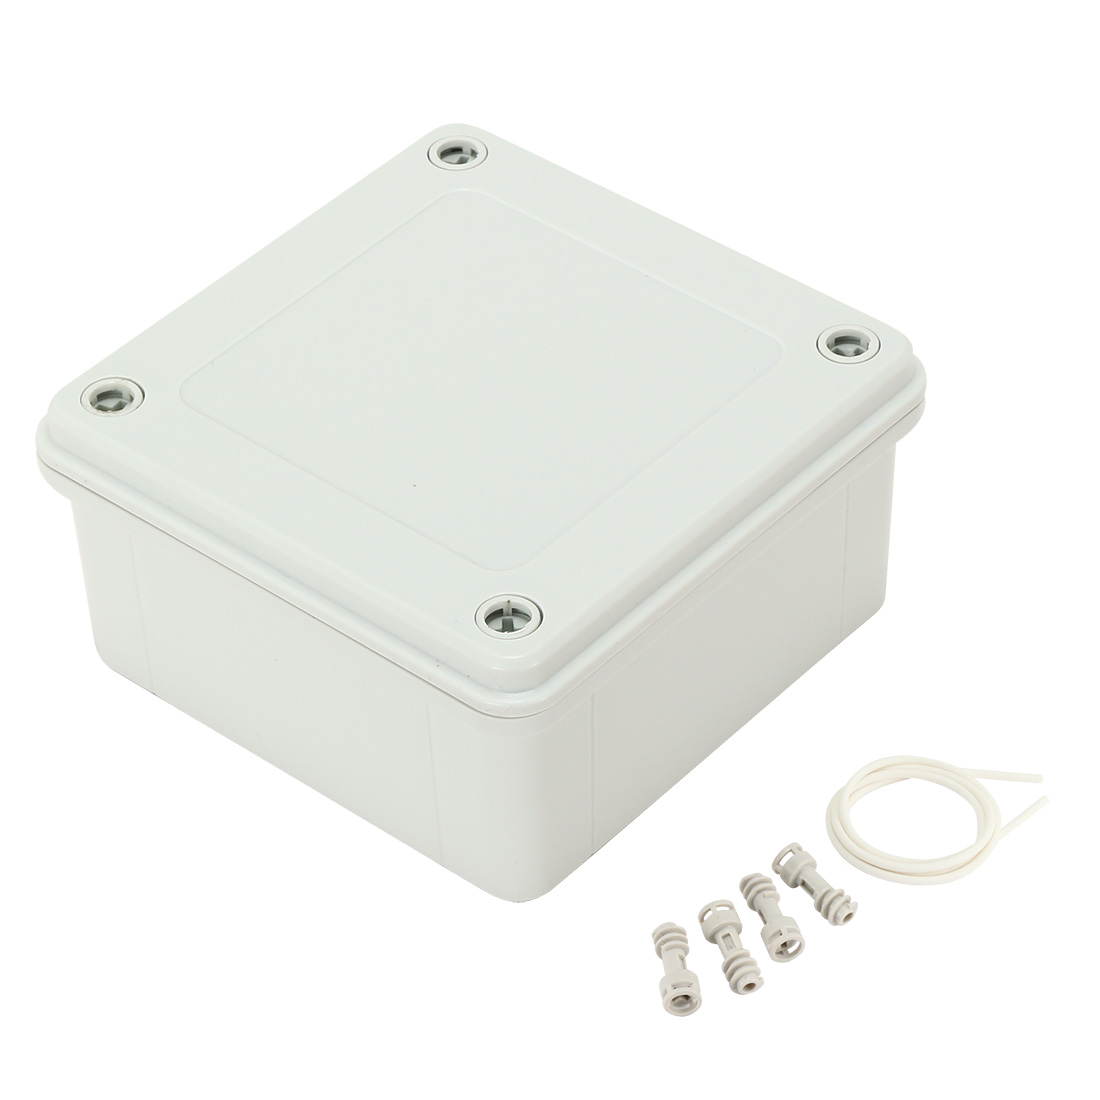 "4.7""x4.7""x2.3""(120mmx120mmx60mm) ABS Junction Box Universal Electric Project Enclosure"